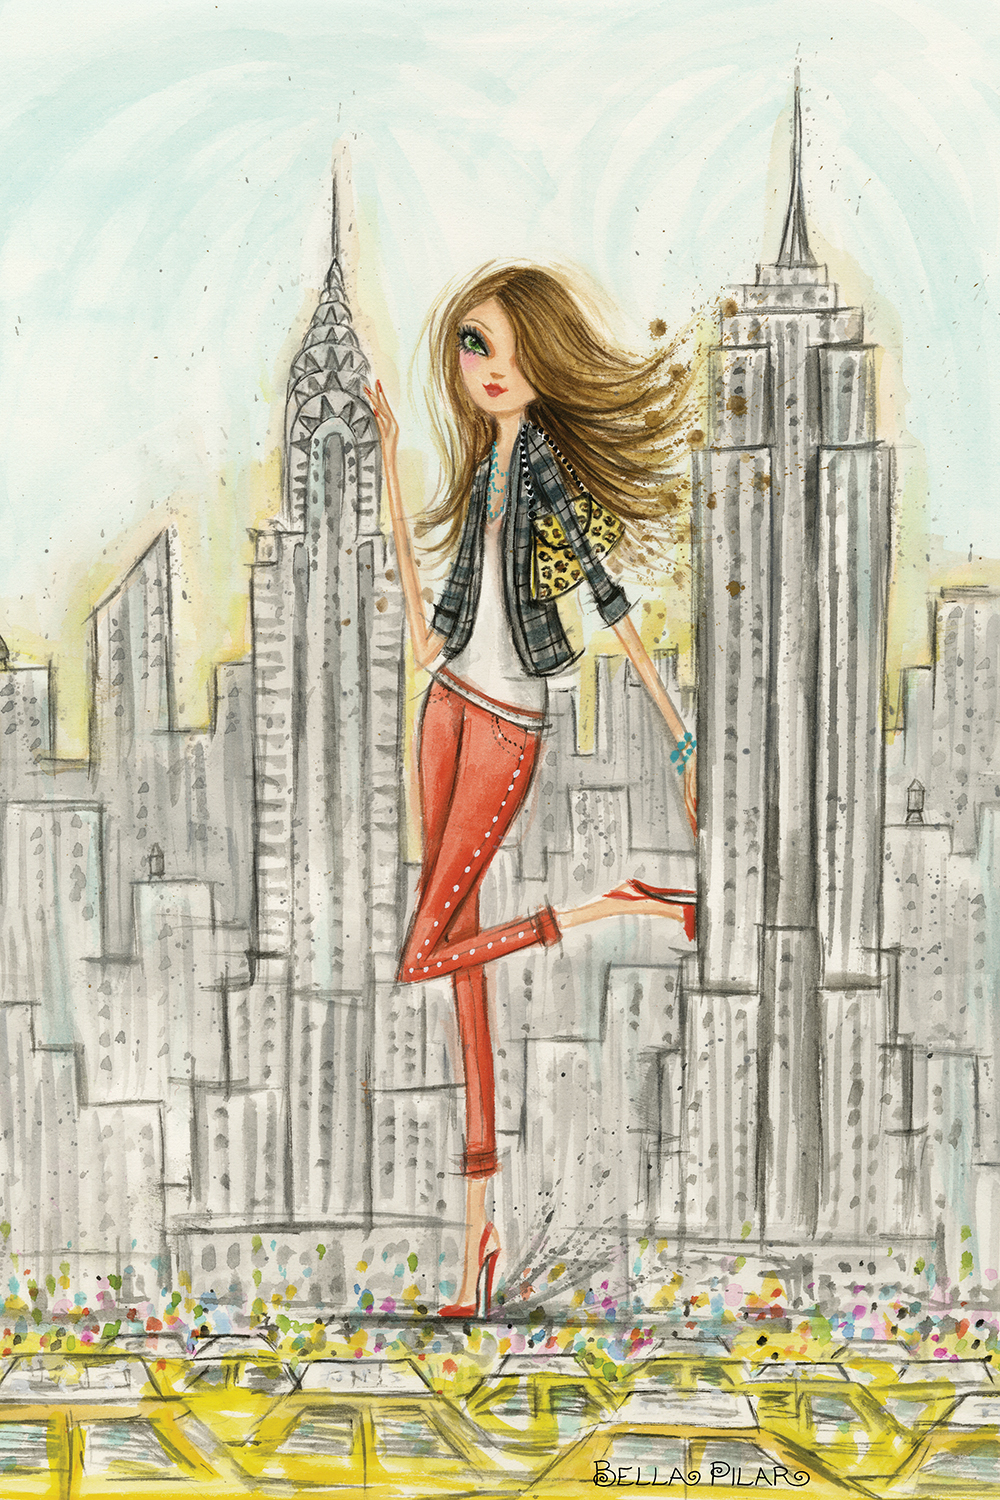 giant woman in red heels and pants standing alongside new york skyline with taxi cabs in view